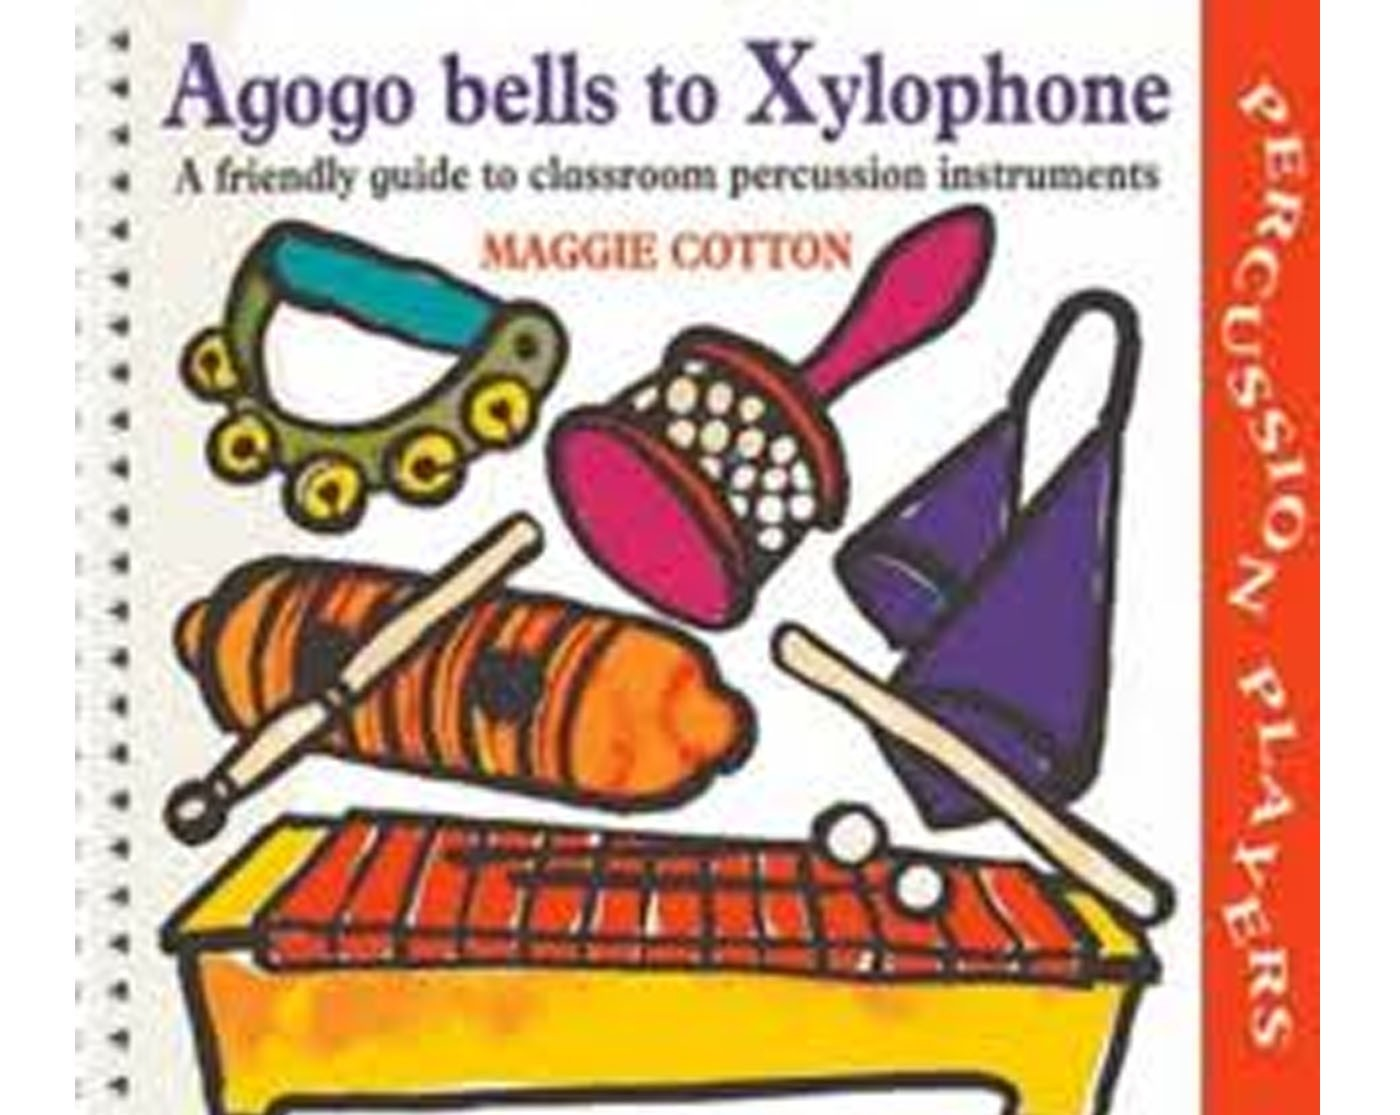 Agogo Bells to Xylophone Book A Friendly Guide Classroom Percussion S155